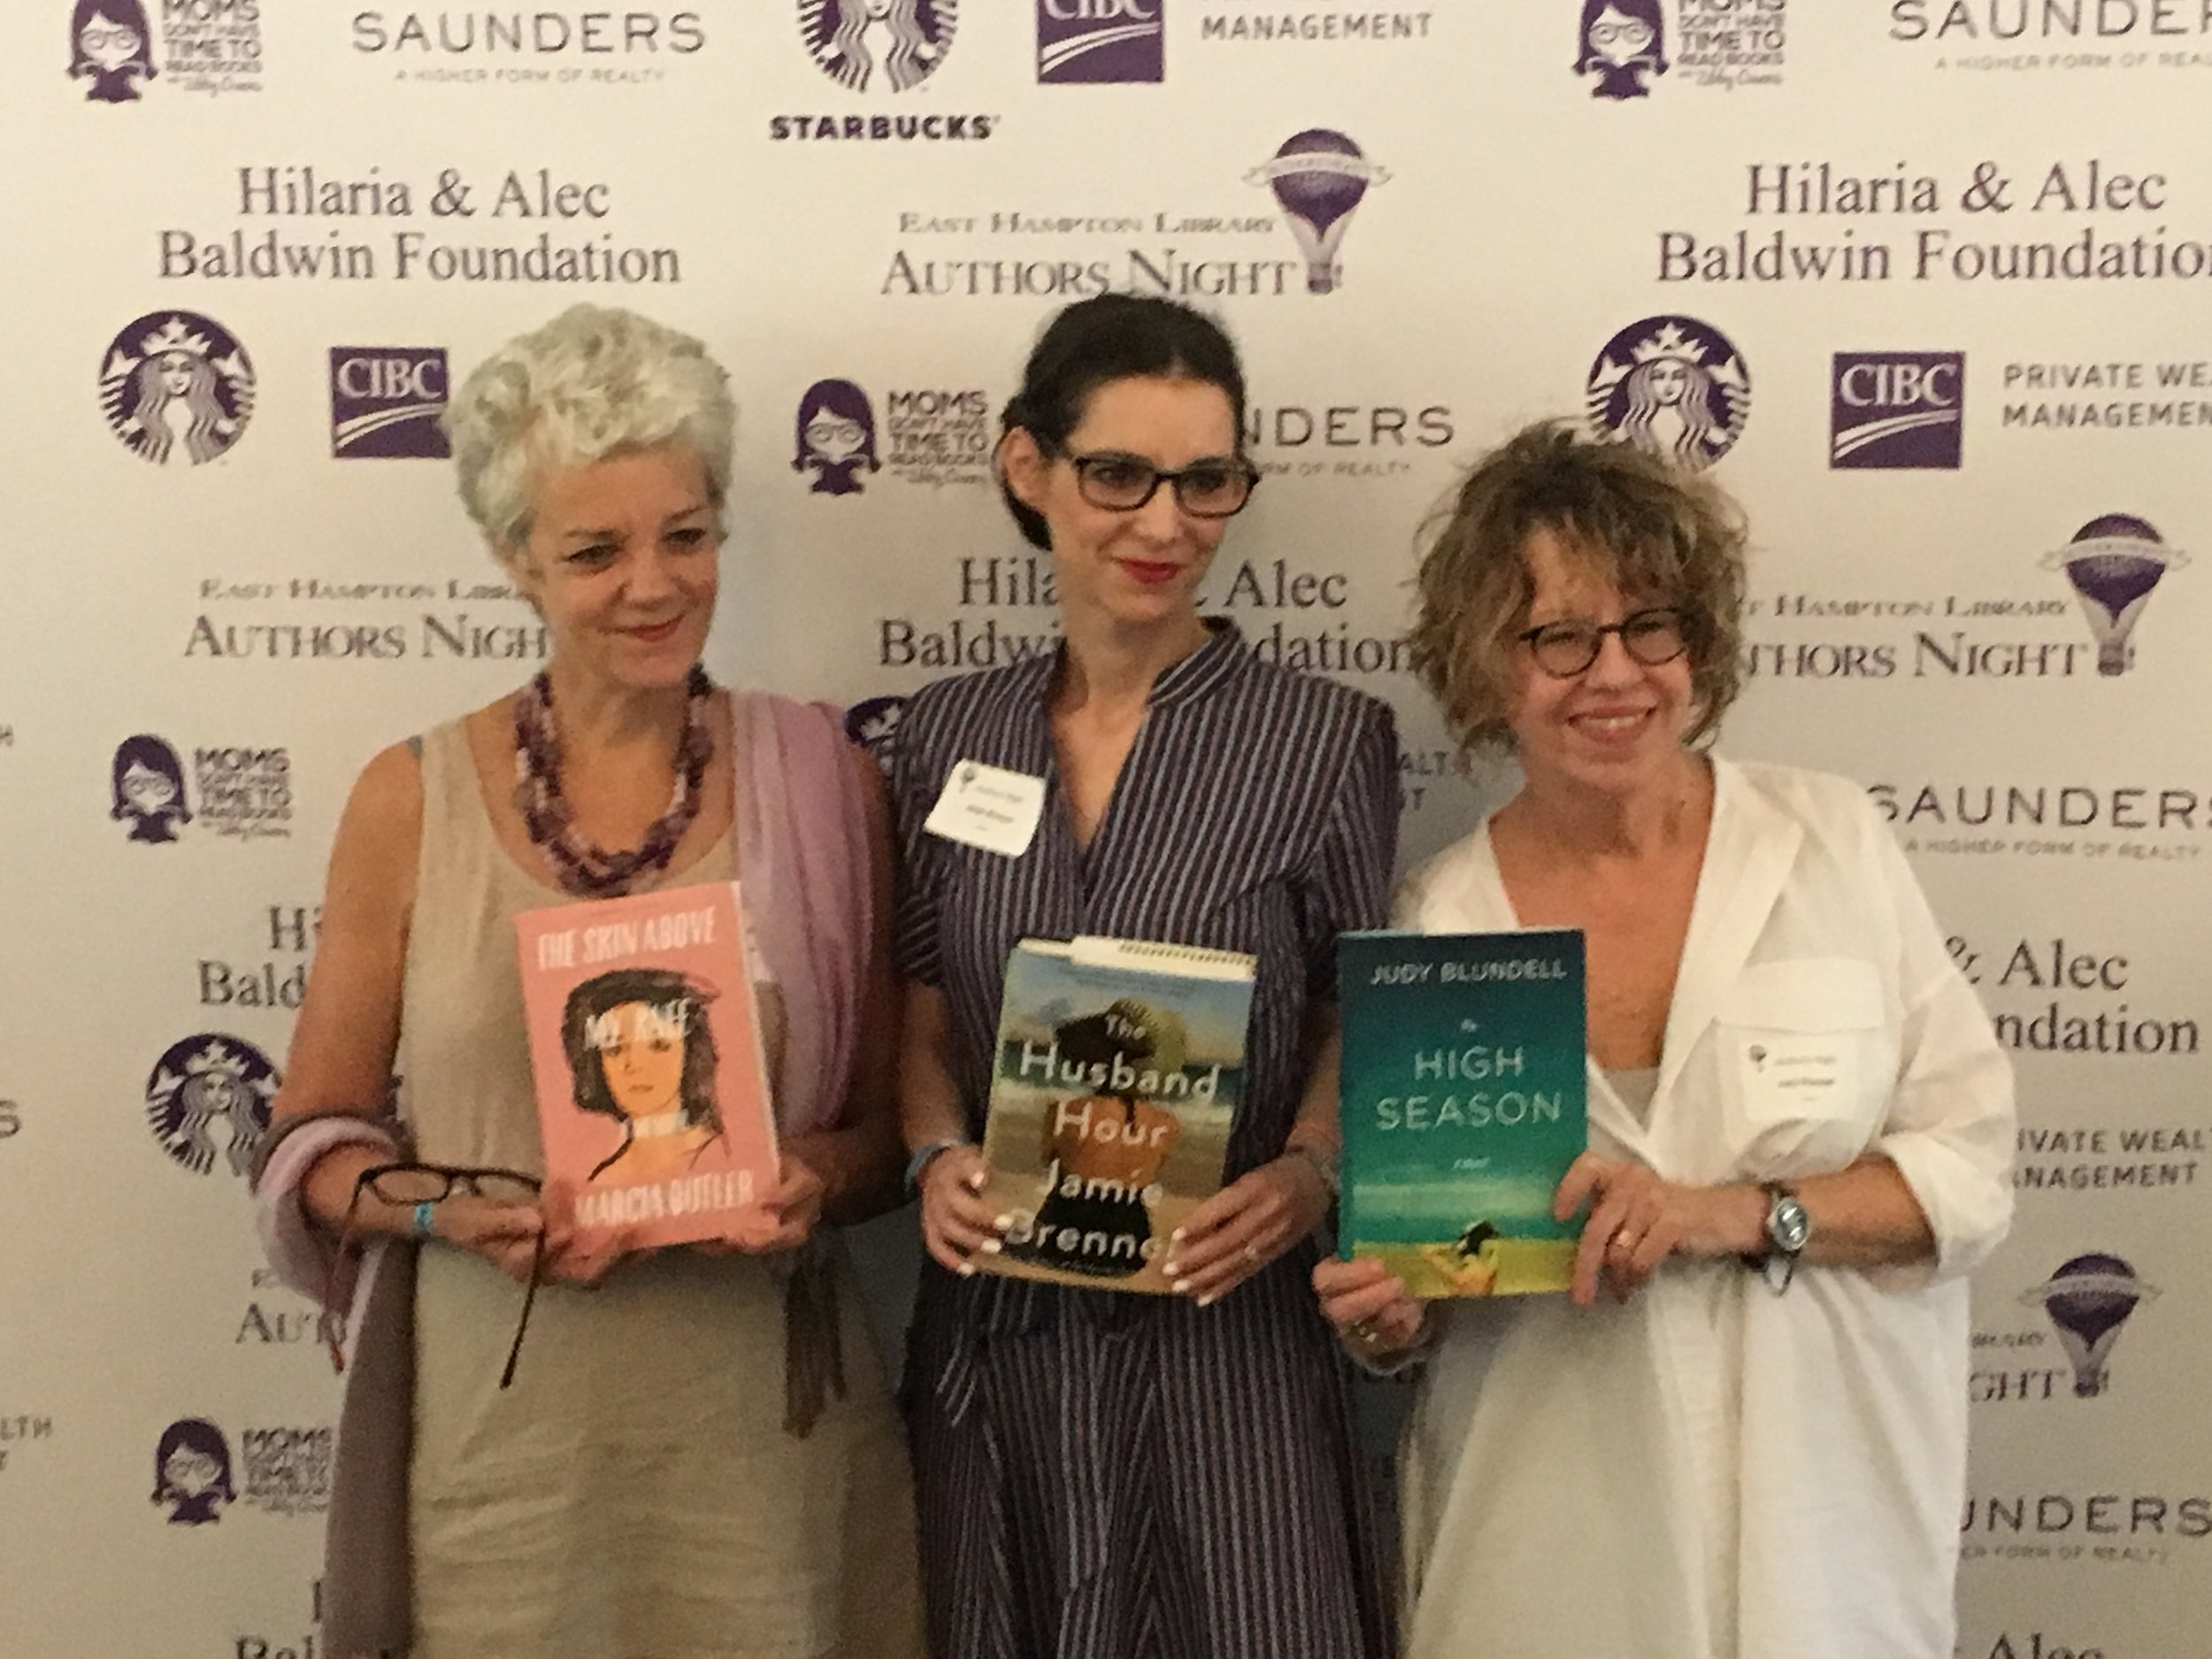 With my wonderful table mates Marcia Butler and Judy Blundell at Authors Night to benefit the East Hampton Library.